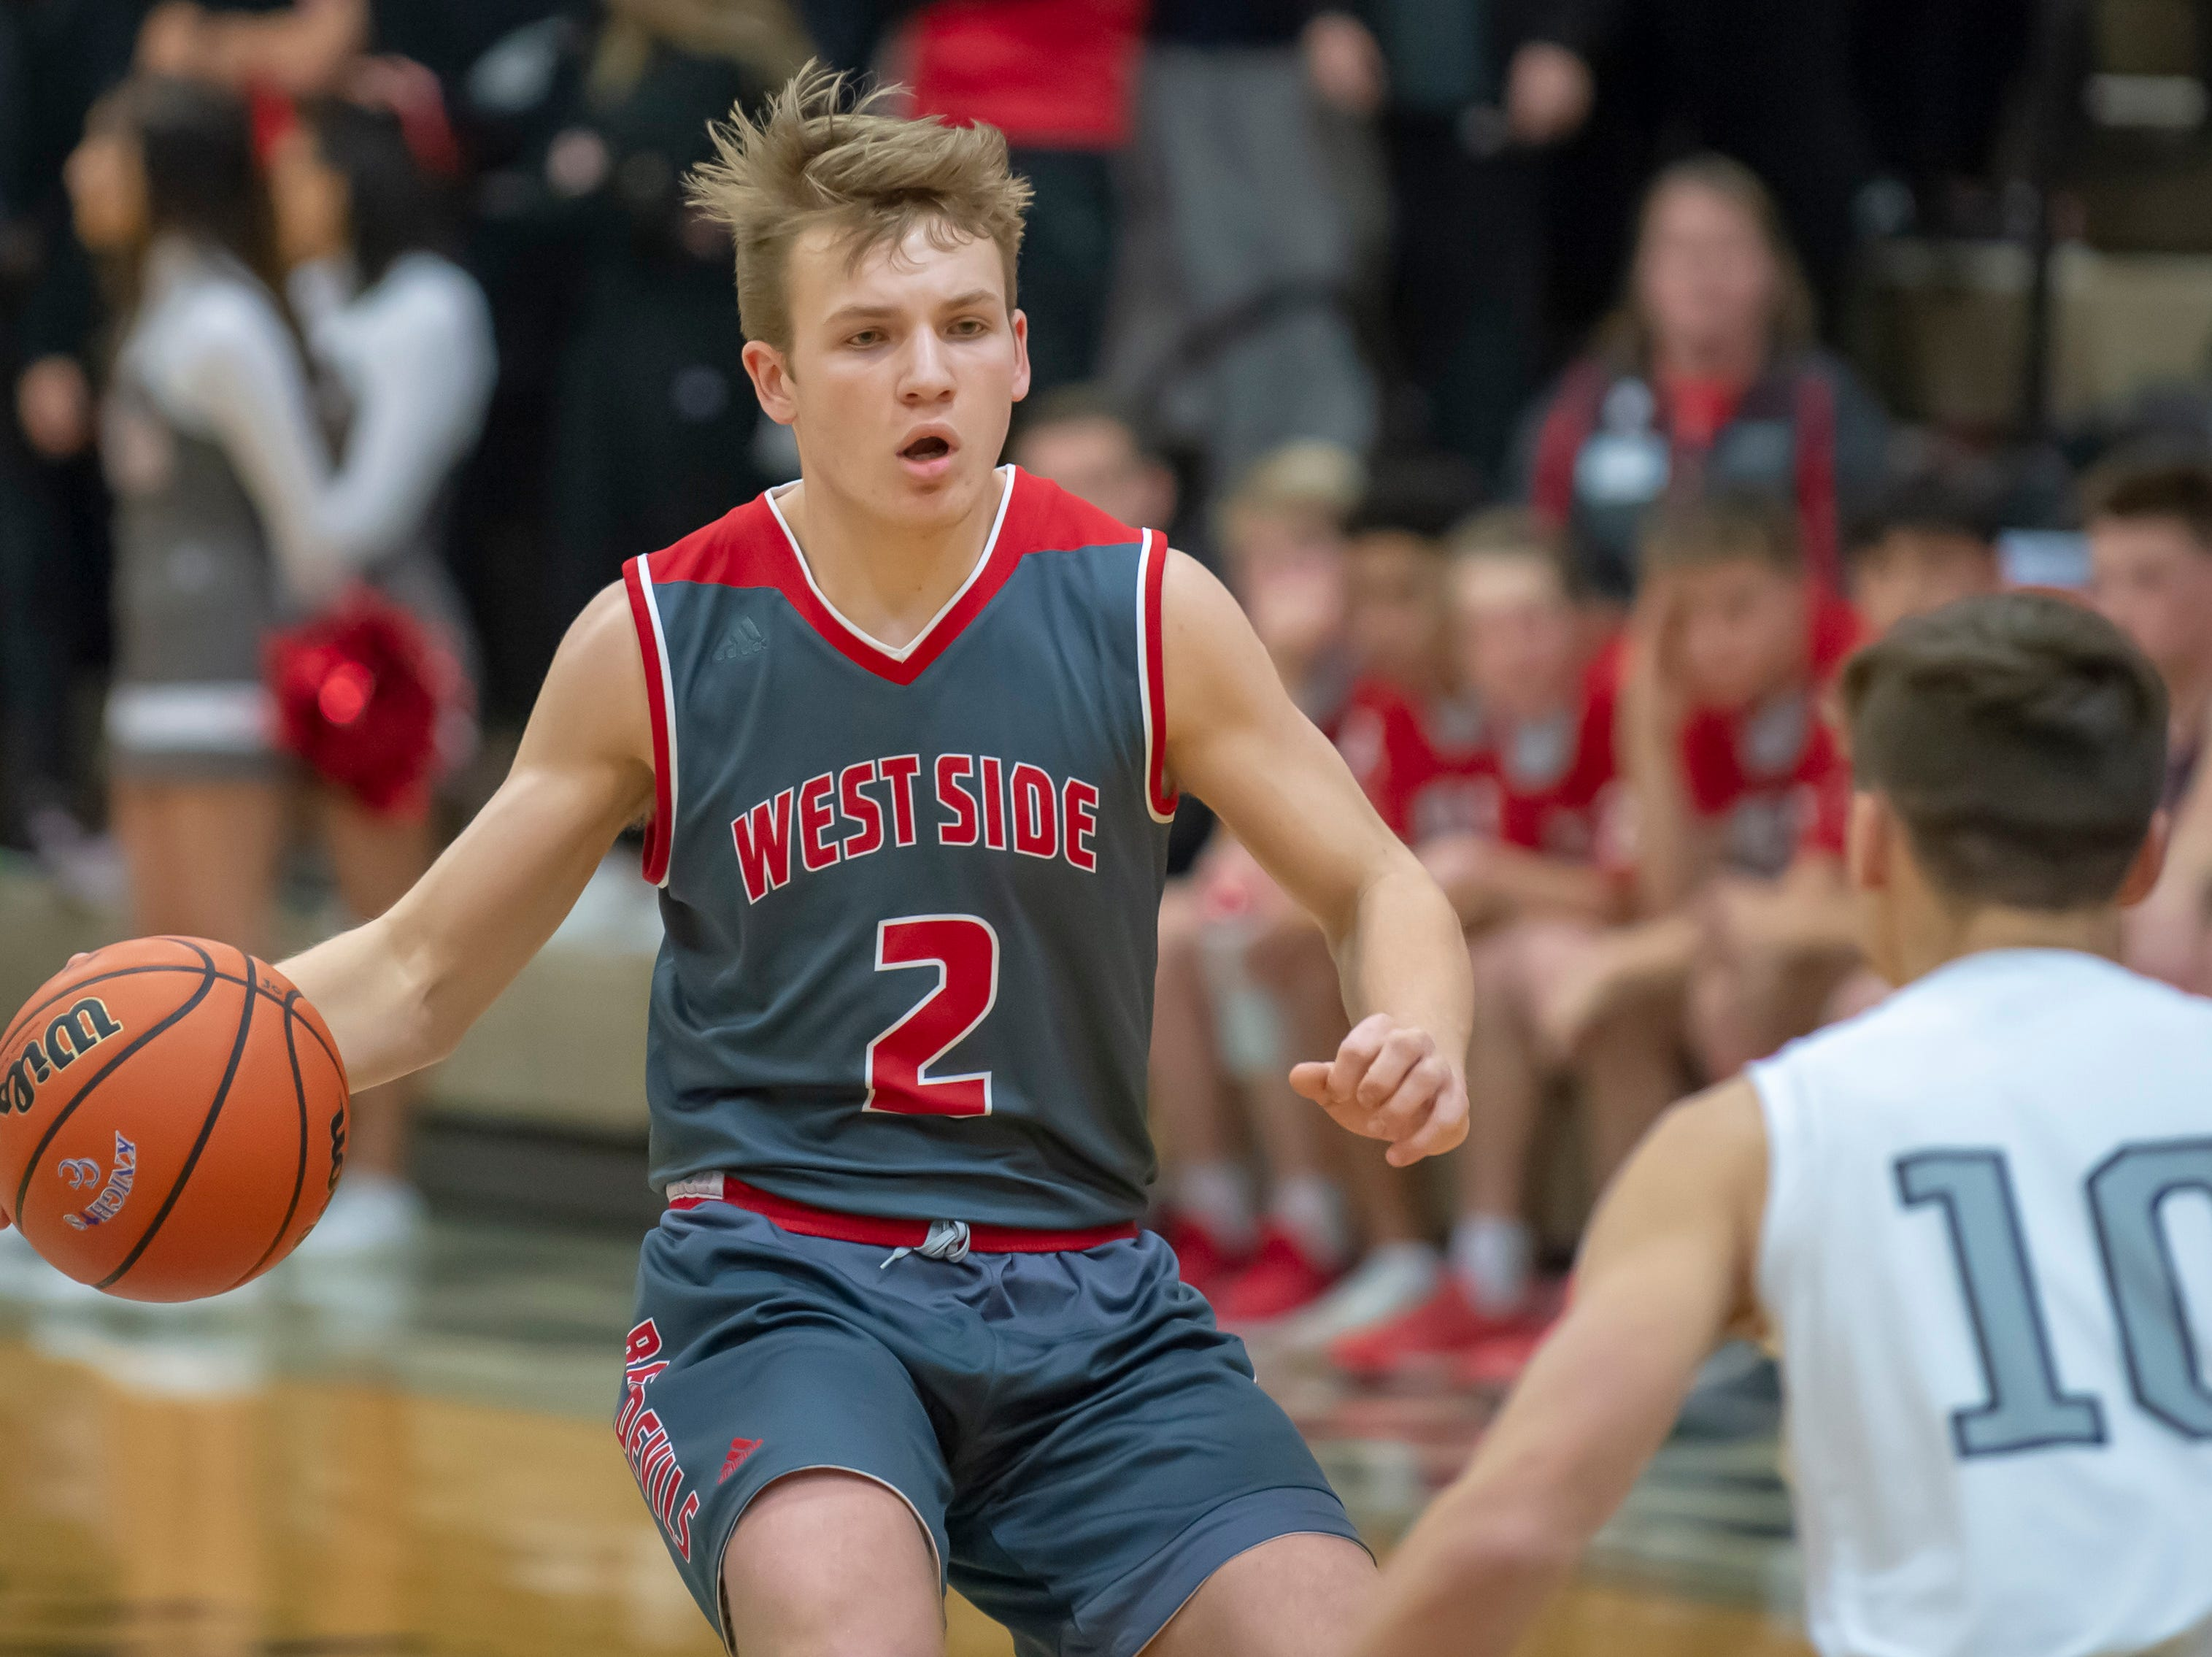 Tyler Boyle leads the way early in the West Lafayette at Central Catholic boys basketball rivalry game on 2/8/19